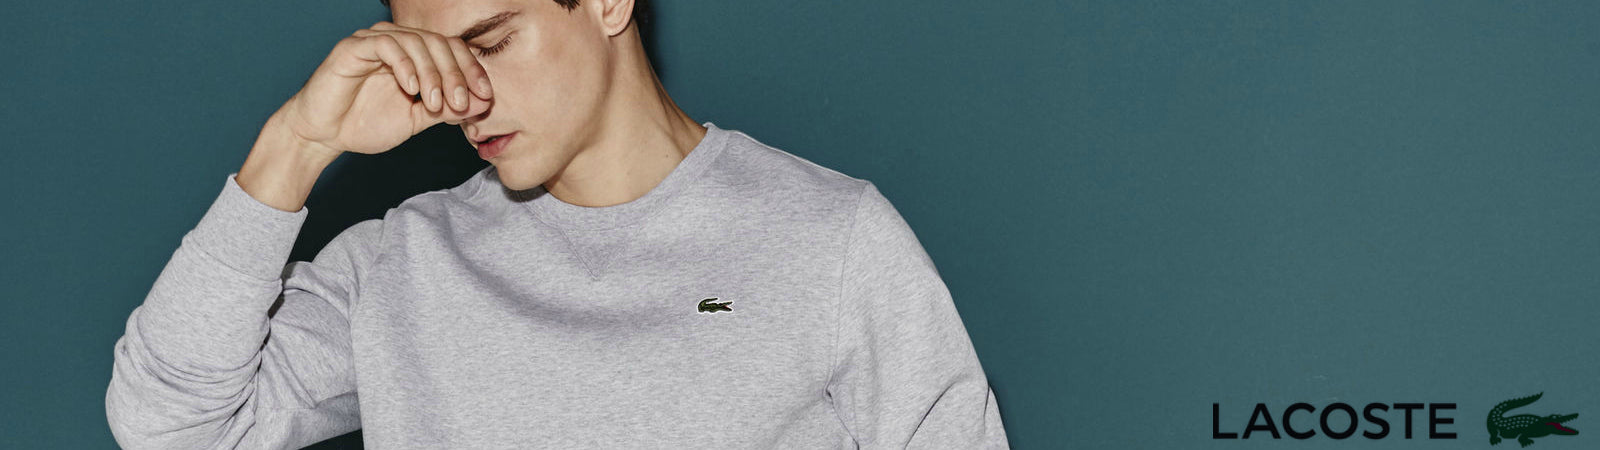 ccc62877250ac Lacoste | Premium Casual Wear Inspired by Optimism & Elegance ...